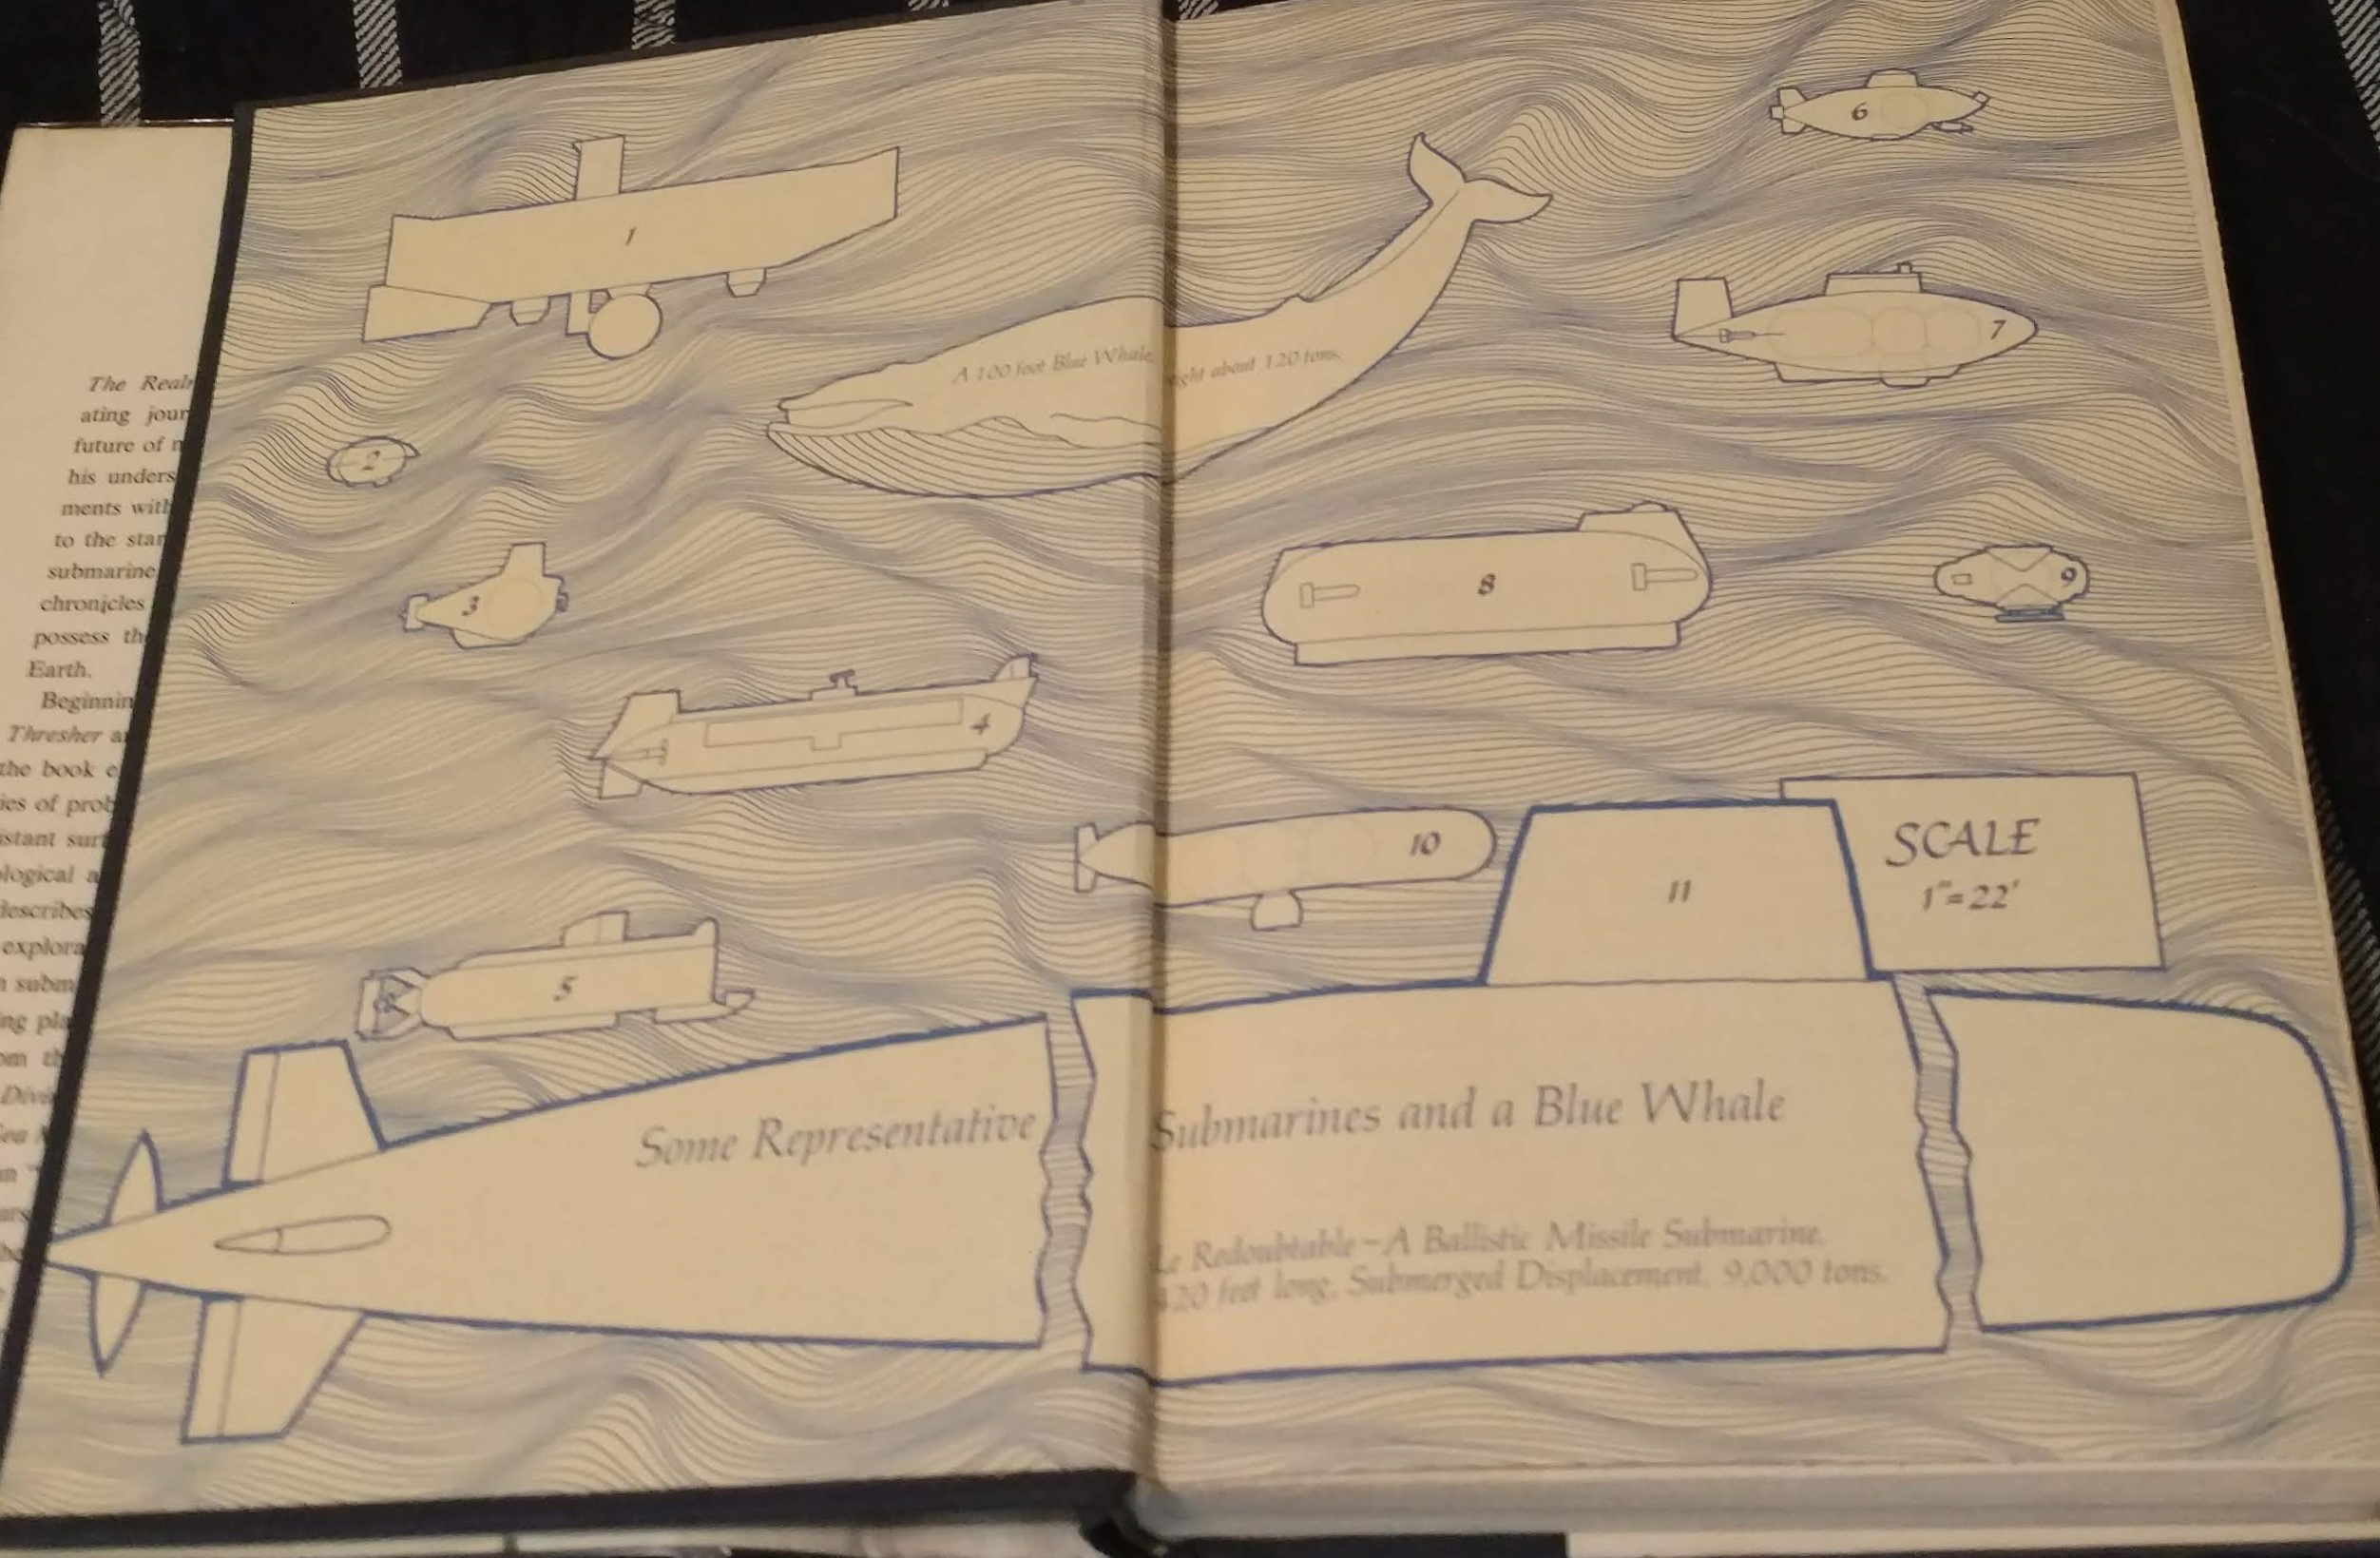 Endpages from The Realm of the Submarine, highlighting the scale of different submersible assets.